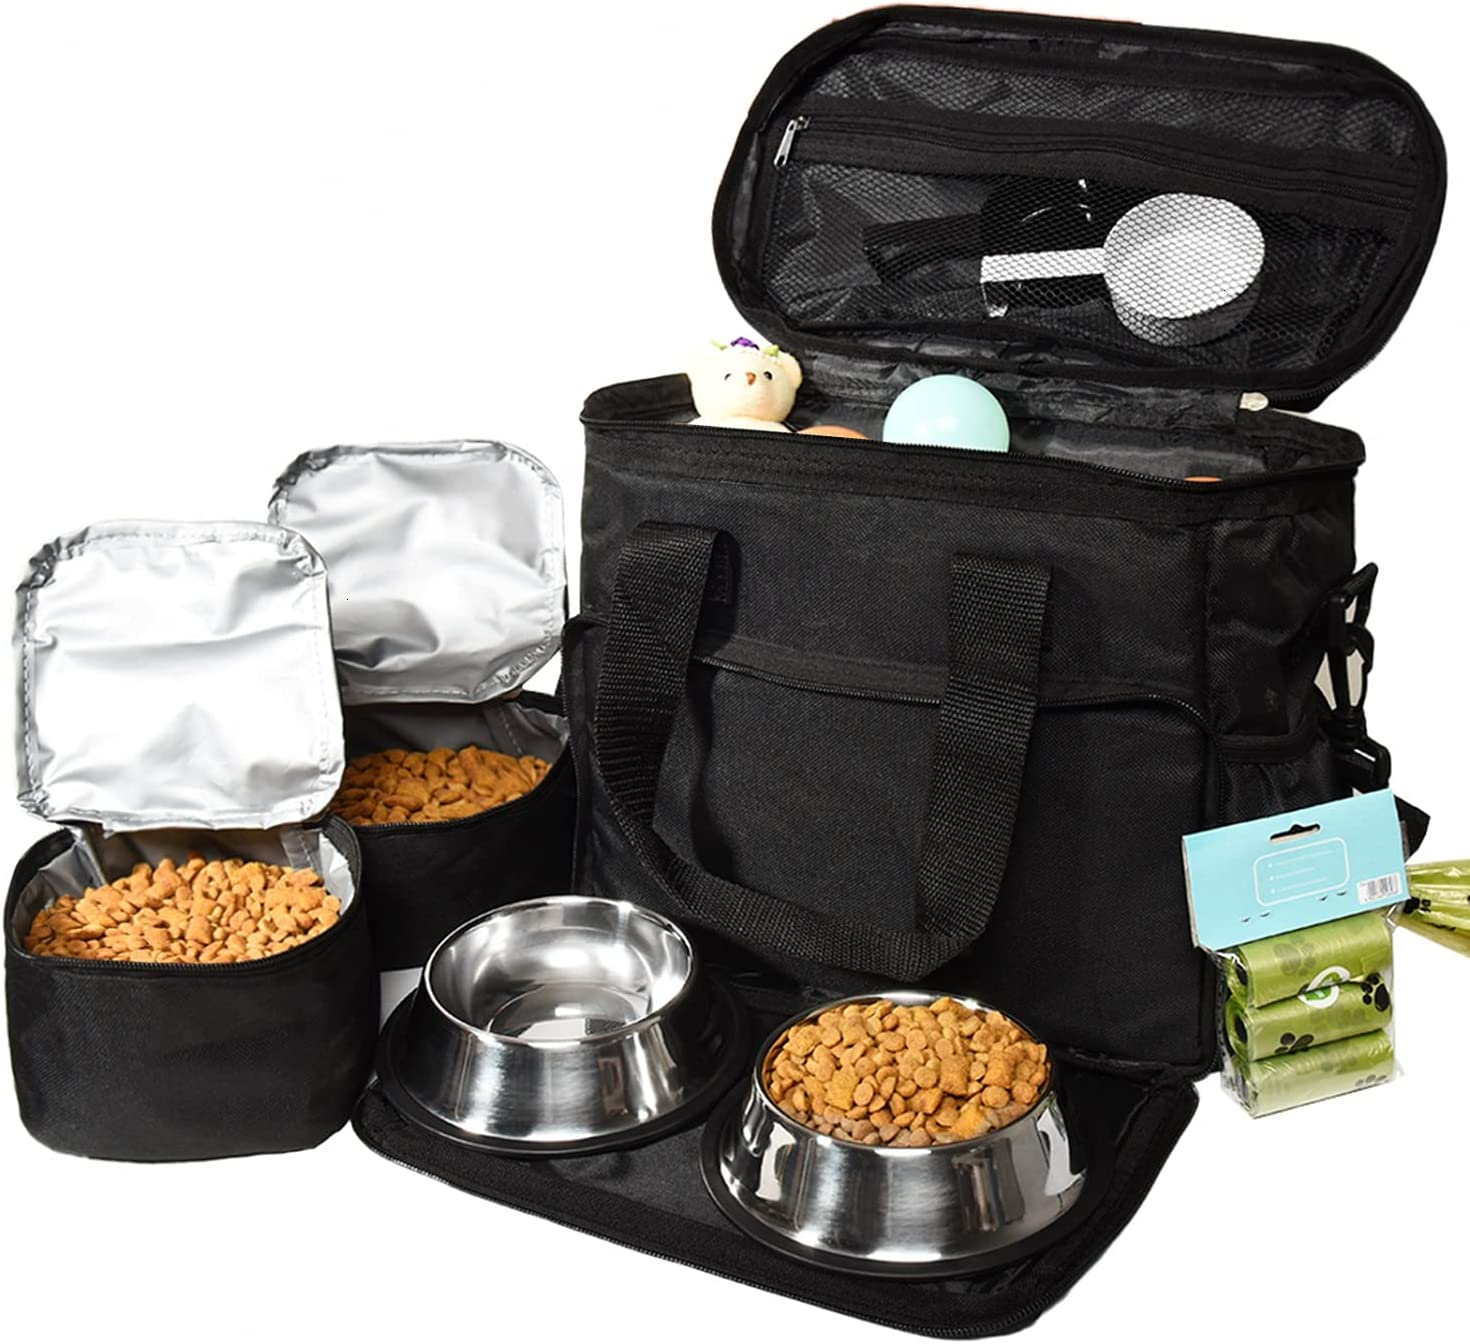 Vumdua Dog Travel Bag - Pet Travel Bag Organizer for Accessories, Includes 2 Dog Bowls, 2 Travel Dog Food Container and 3 Dog Poop Bags, Perfect Weekend Pet Travel Set for Dog Cat